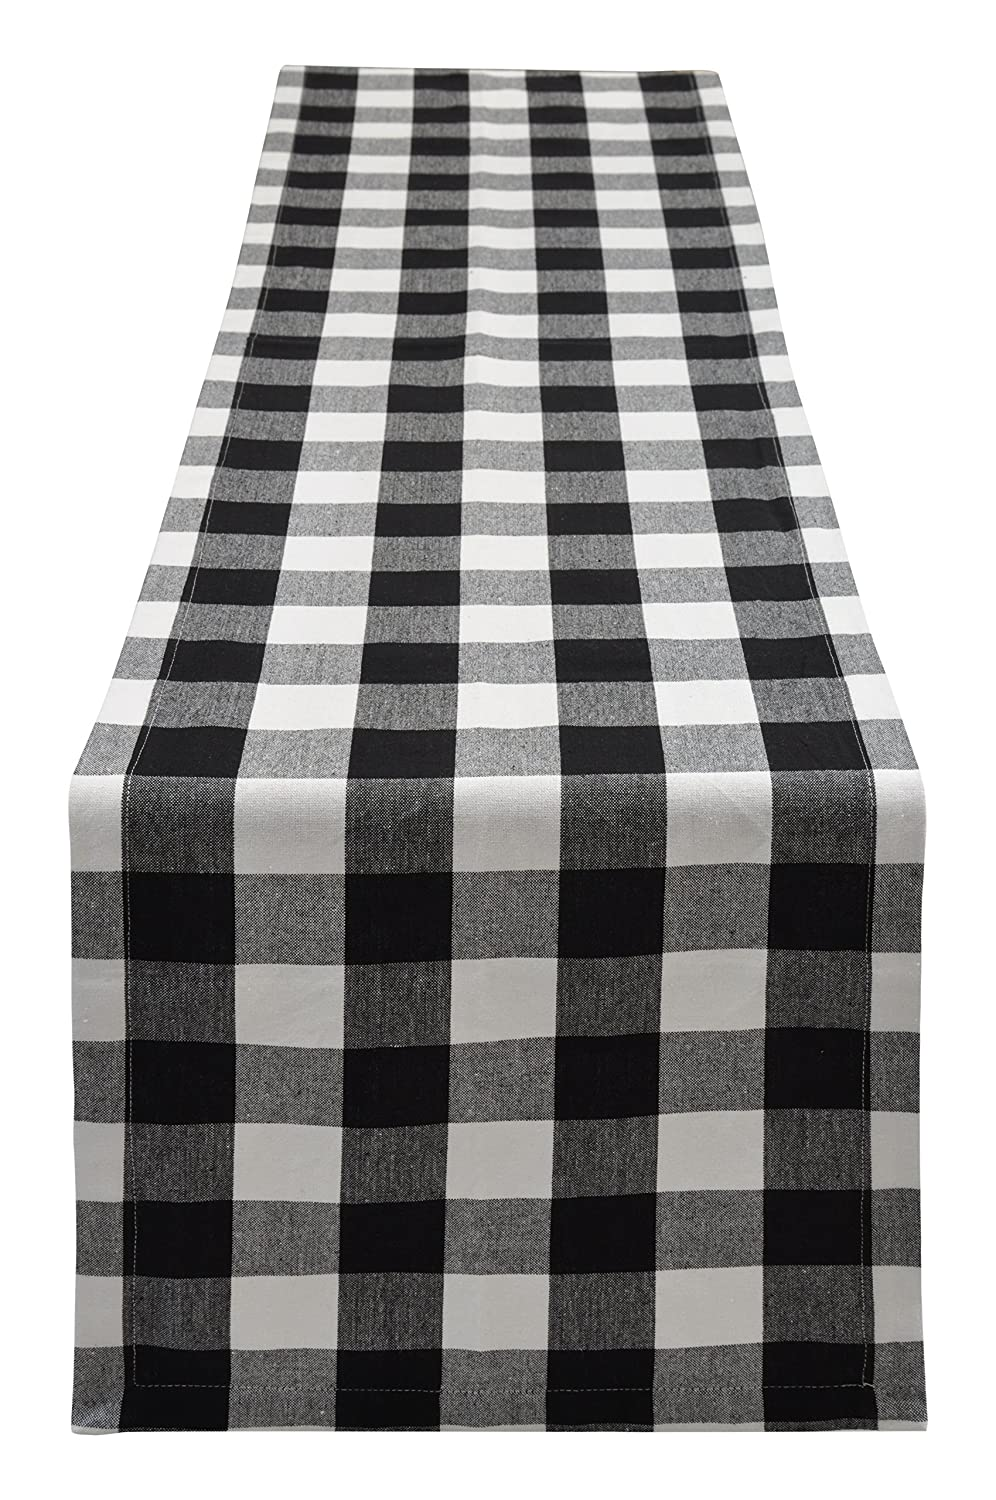 Yourtablecloth Buffalo Plaid Checkered Table Runner Trendy & Modern Plaid Design 100% Cotton Tablerunner Elegant Décor for Indoor&Outdoor Events 14 x 72 Black and White